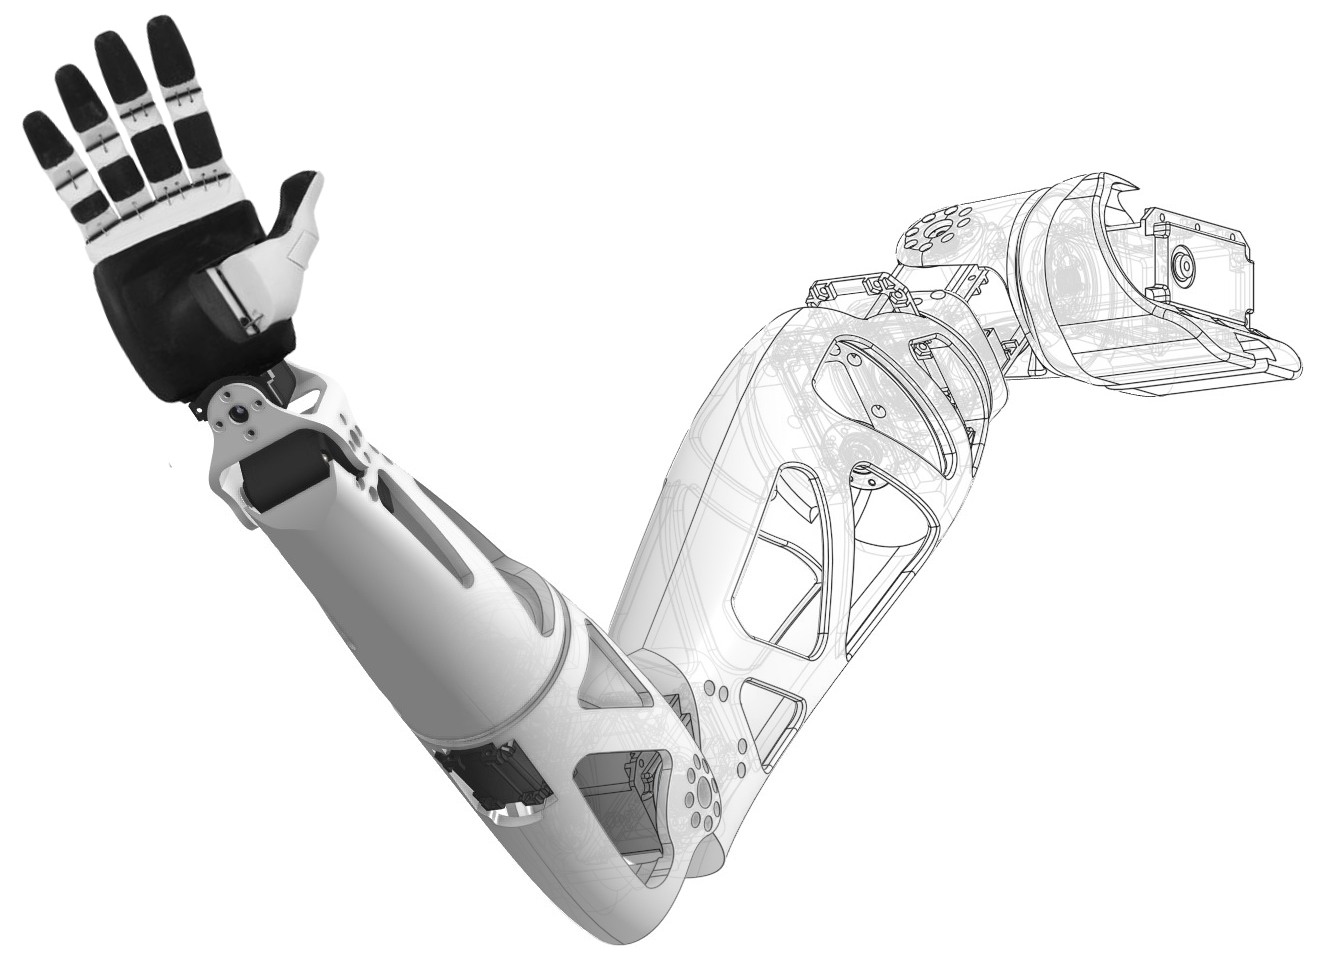 Enter the labs - Welcome to Open Bionics Labs. We're a robotics company known globally for developing the next generation of prosthetics for amputees, which you can find out about on www.openbionics.com. Open Bionics Labs is a space to share our latest cutting edge research and development.